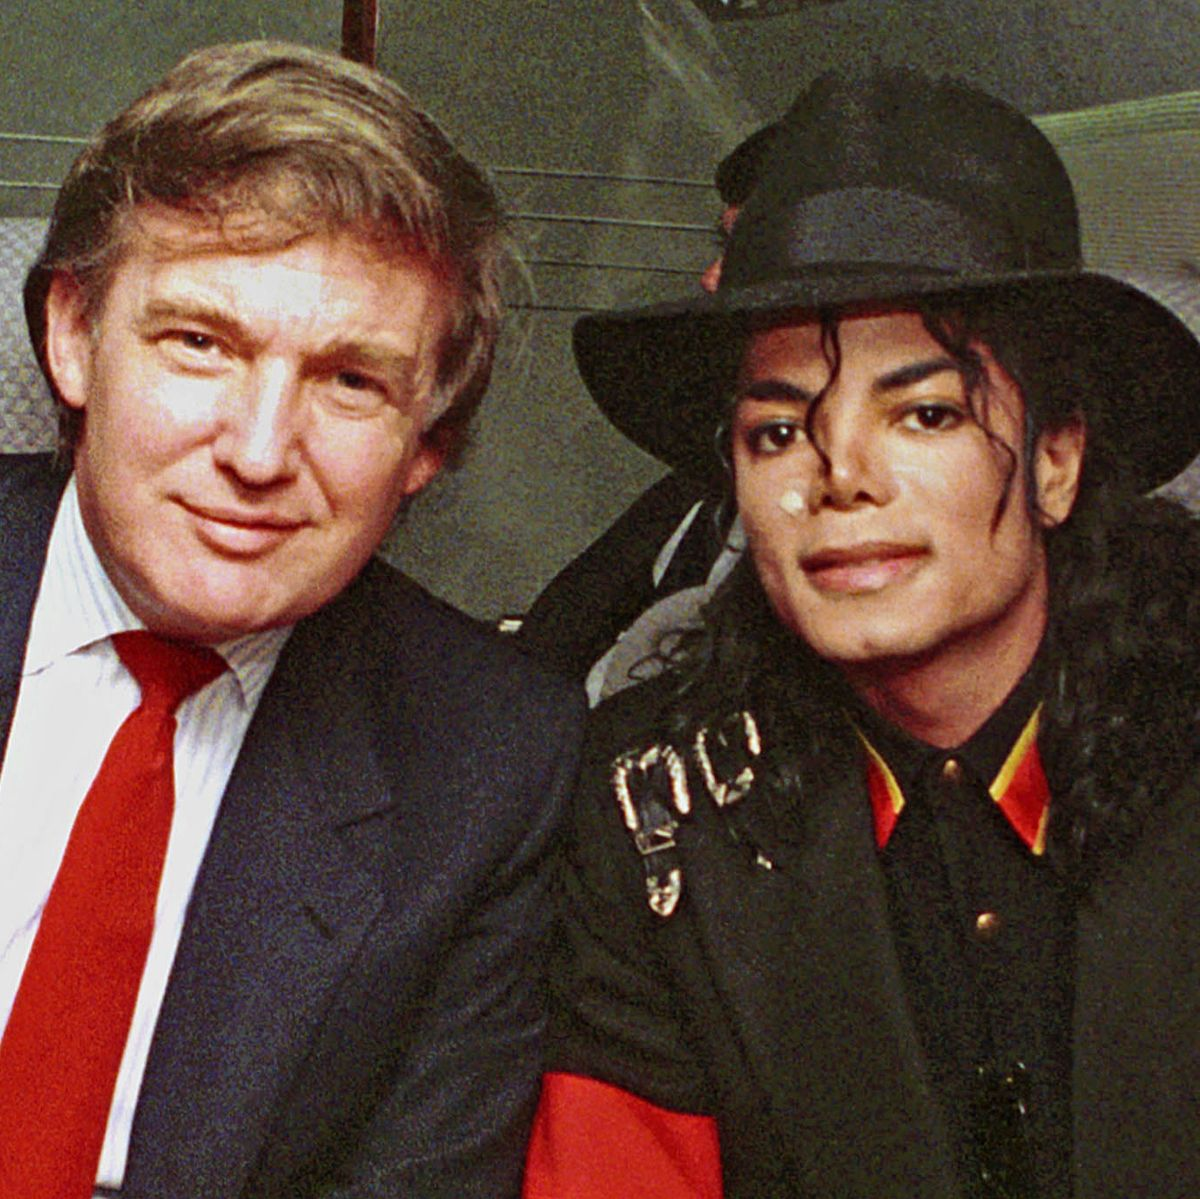 Michael Jackson and Donald Trump's Friendship: A Timeline